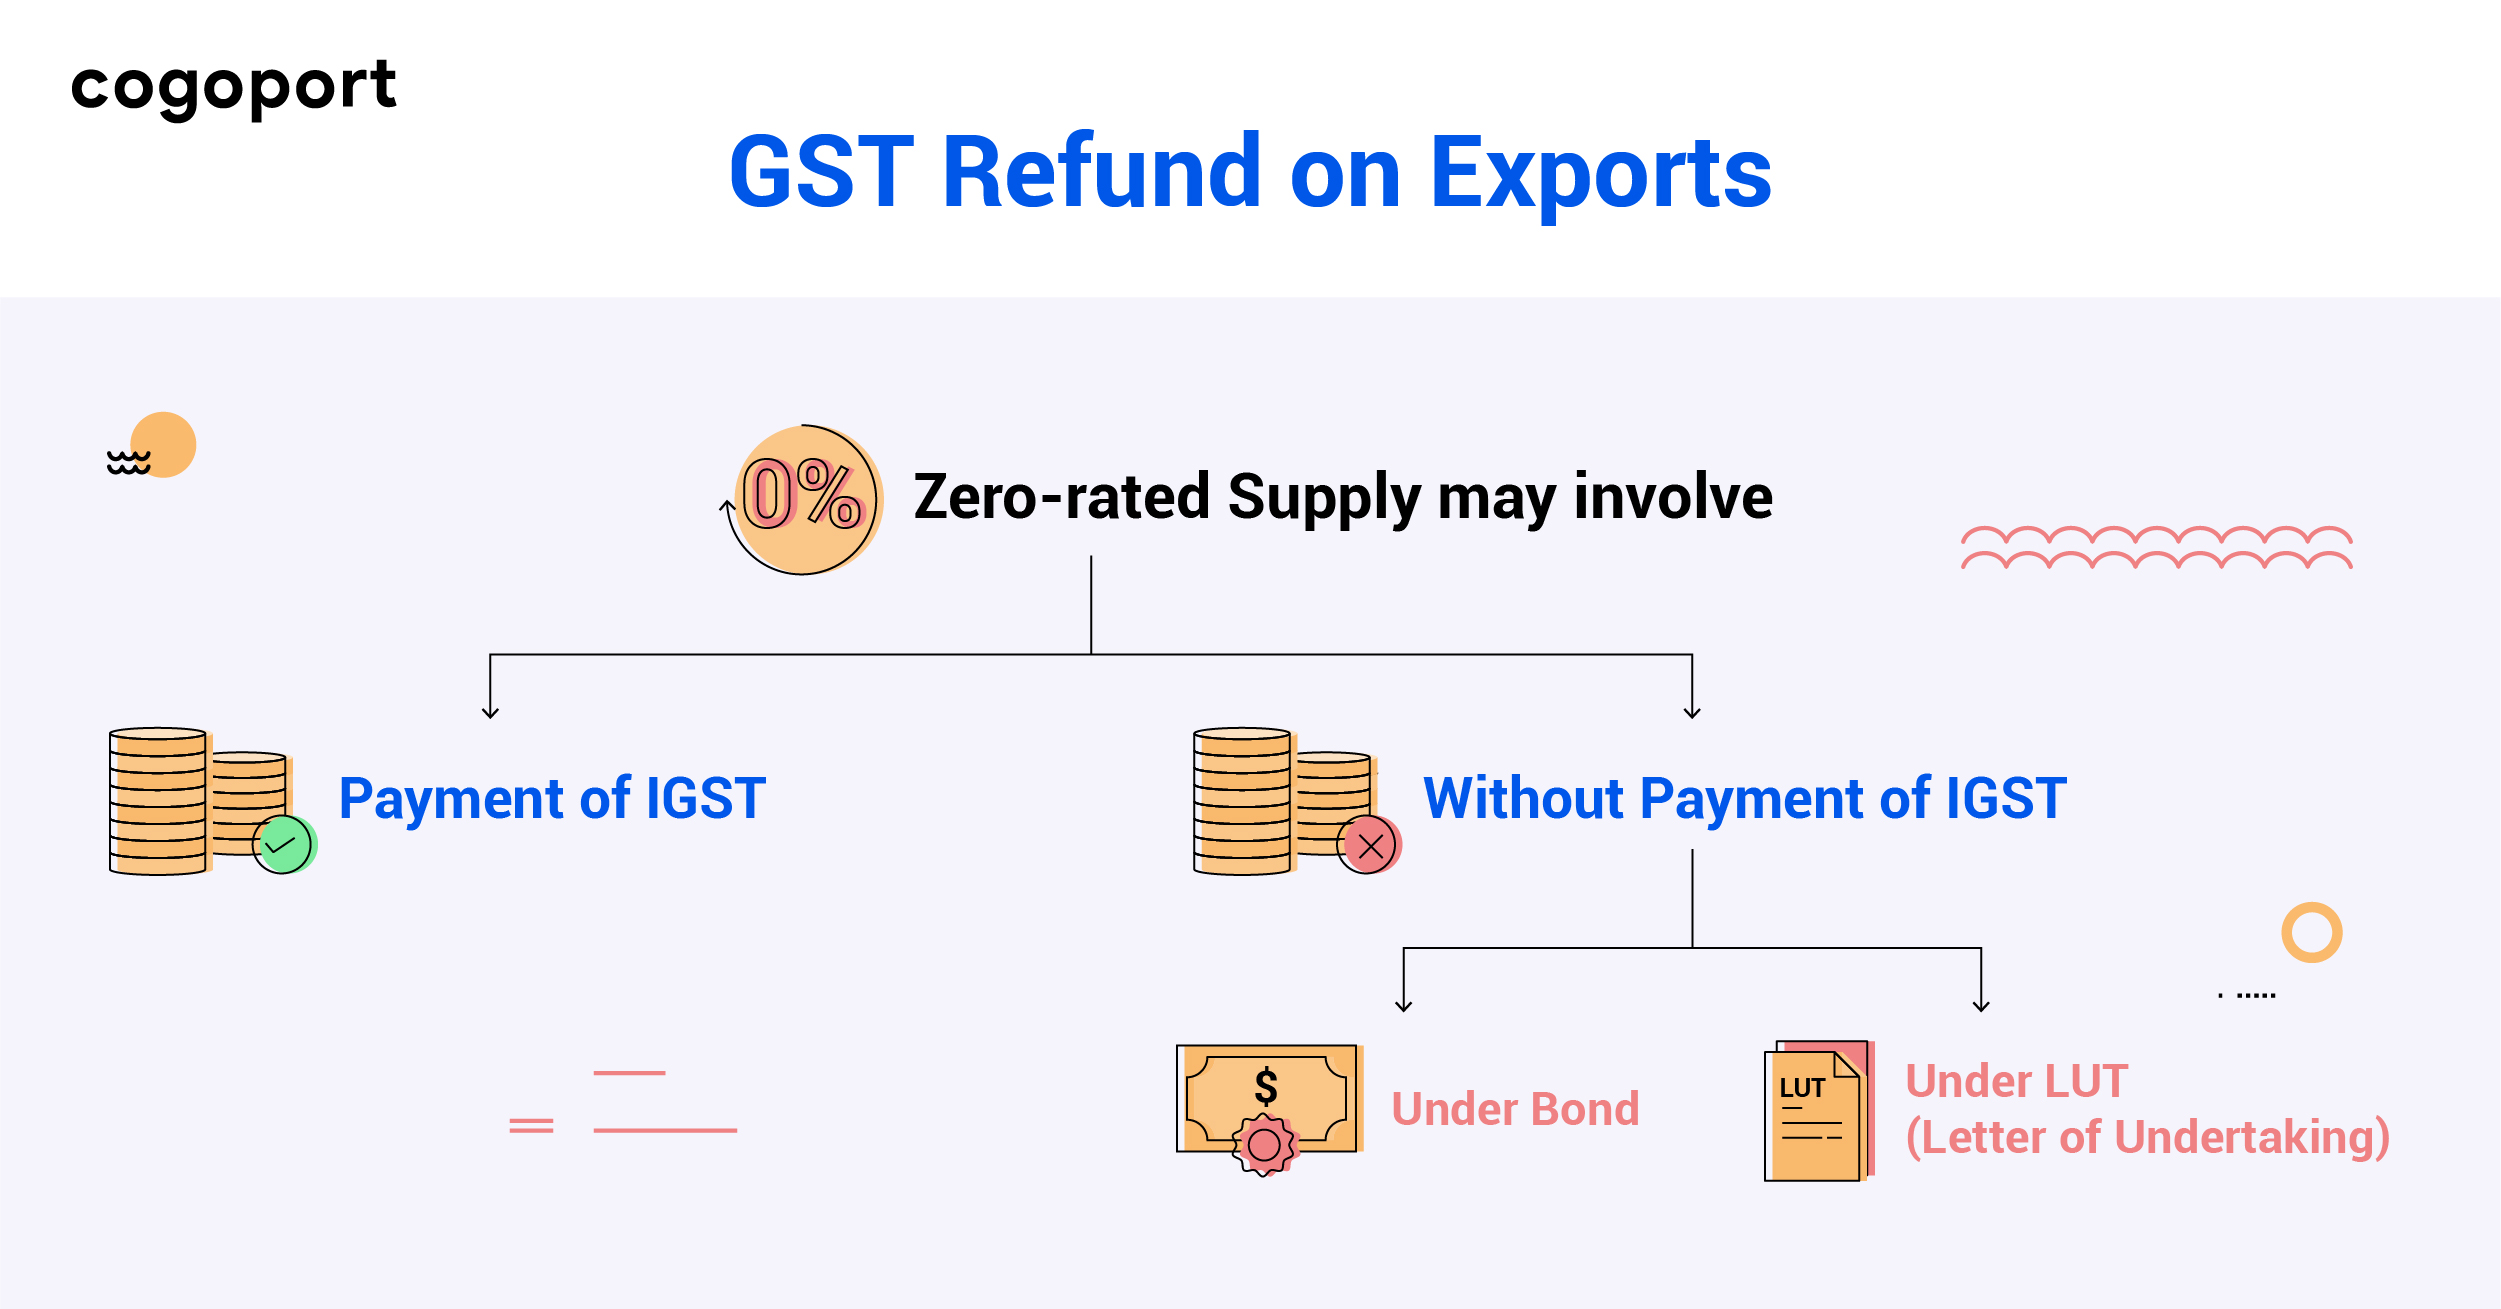 Methods of GST Refund on Exports